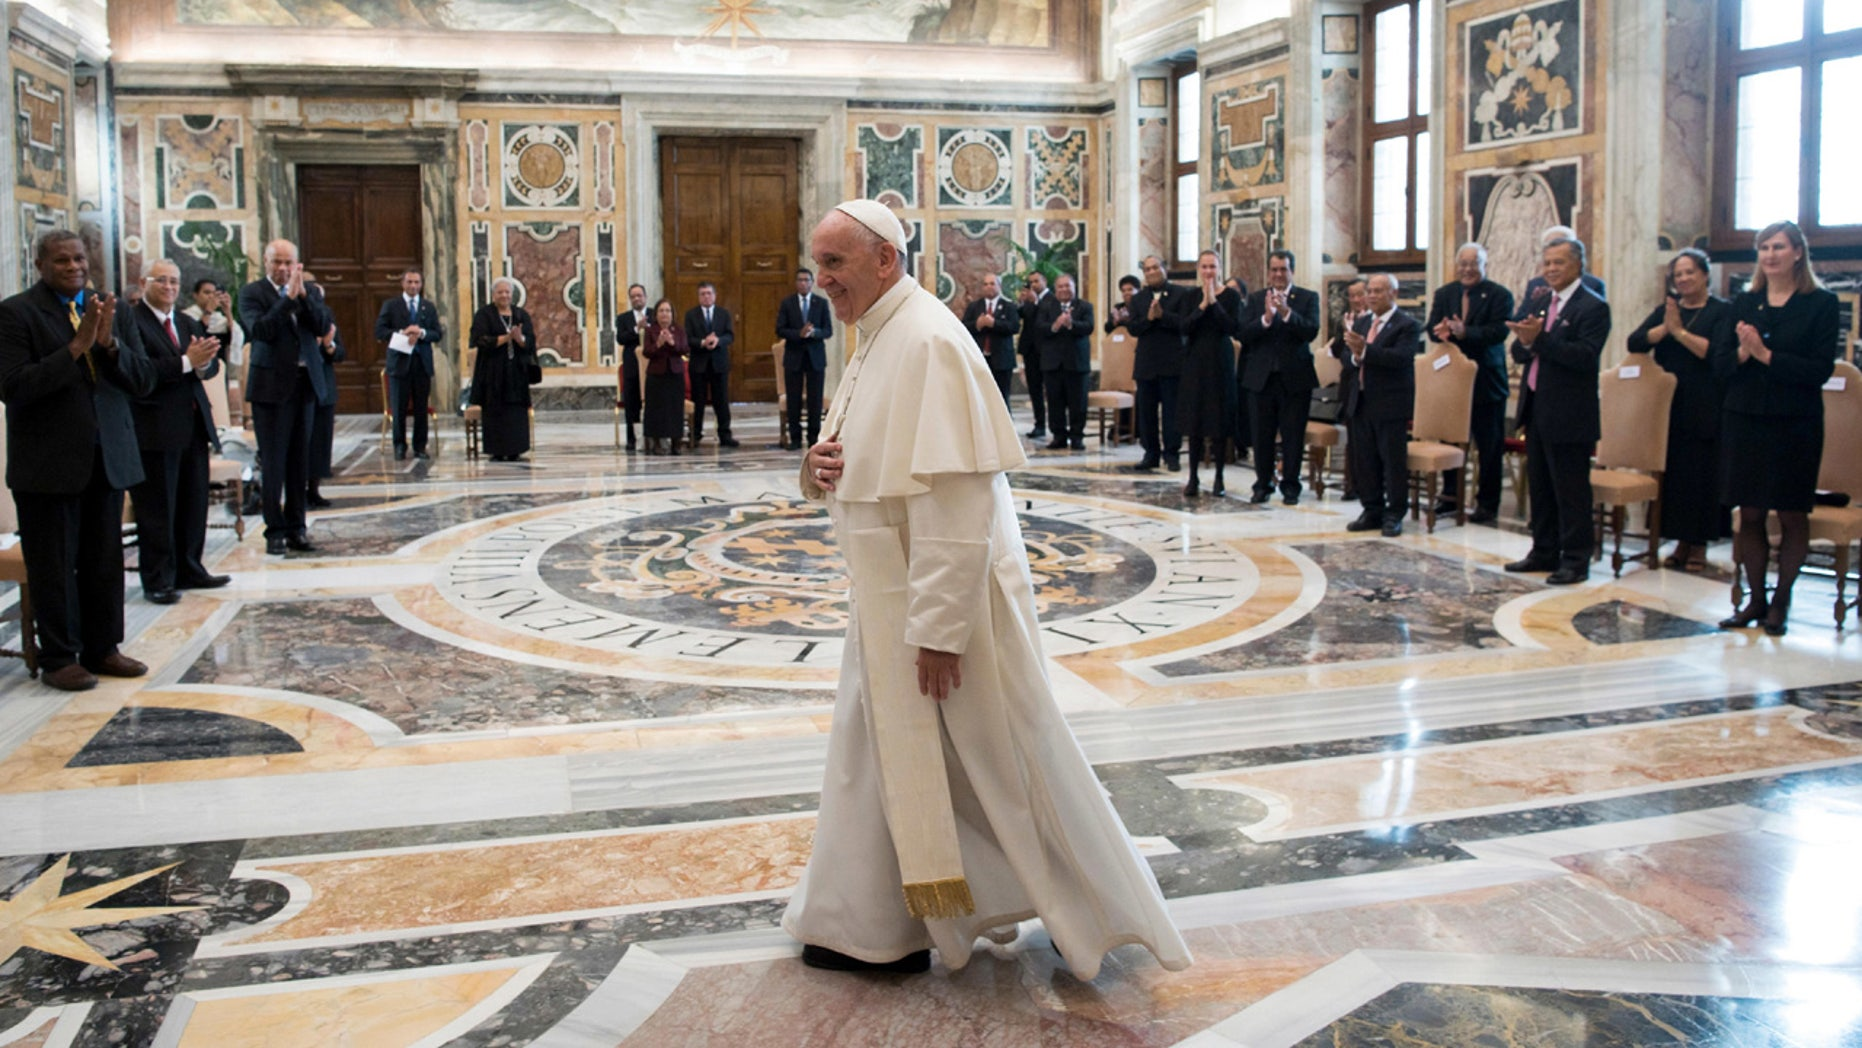 Pope Francis walks in the Clementine Hall after meeting with a delegation of Pacific leaders to discuss climate issues at the Vatican.